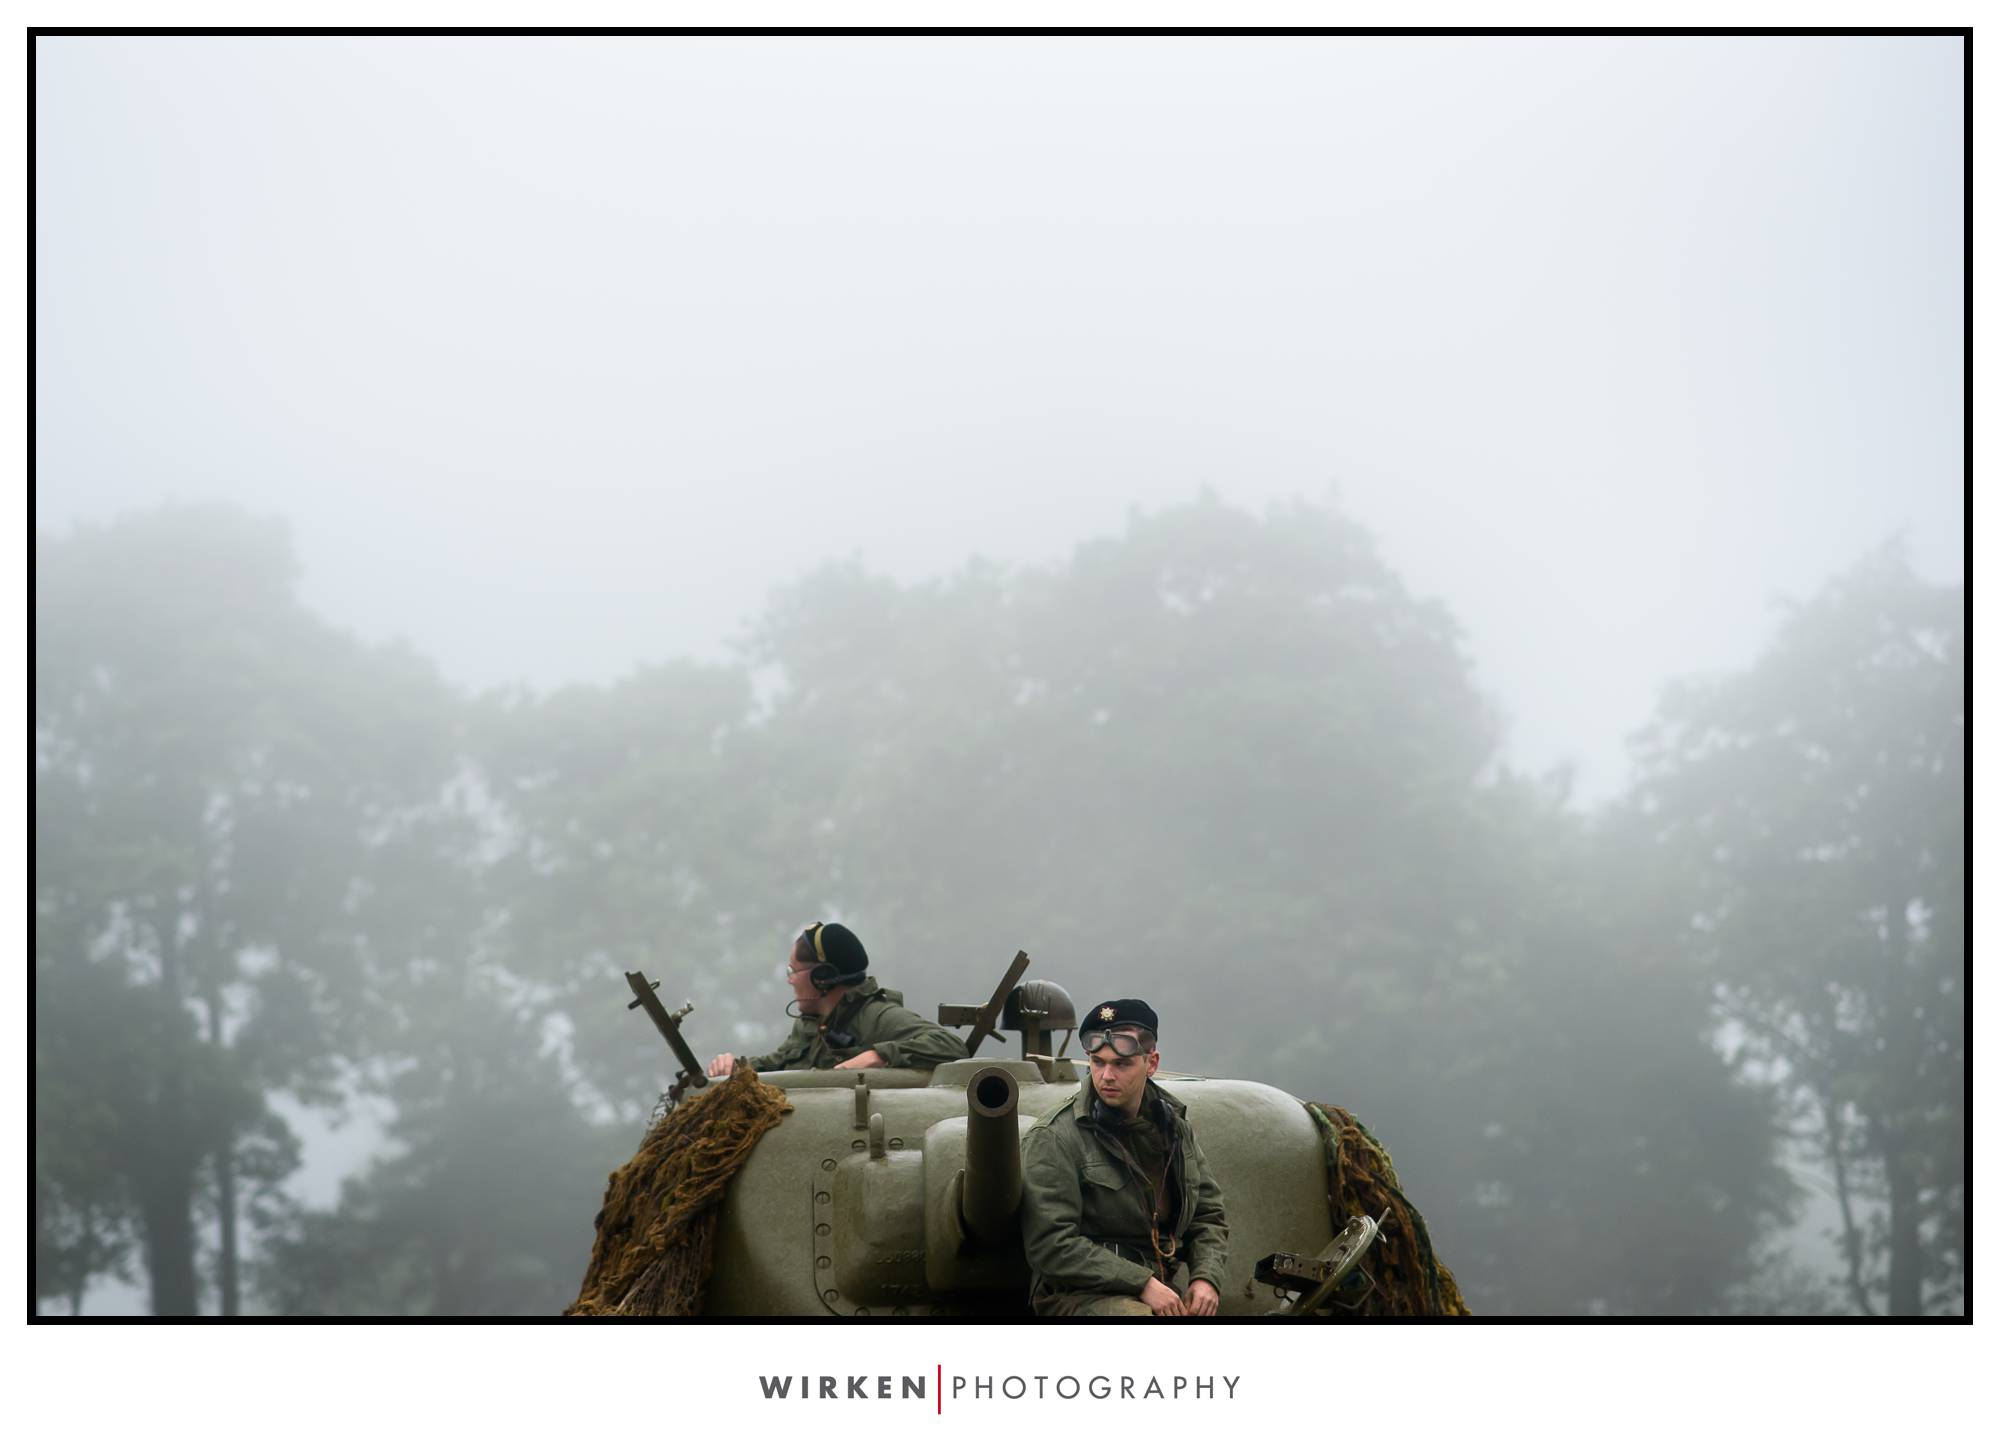 WWII reinactment photography in France 2018